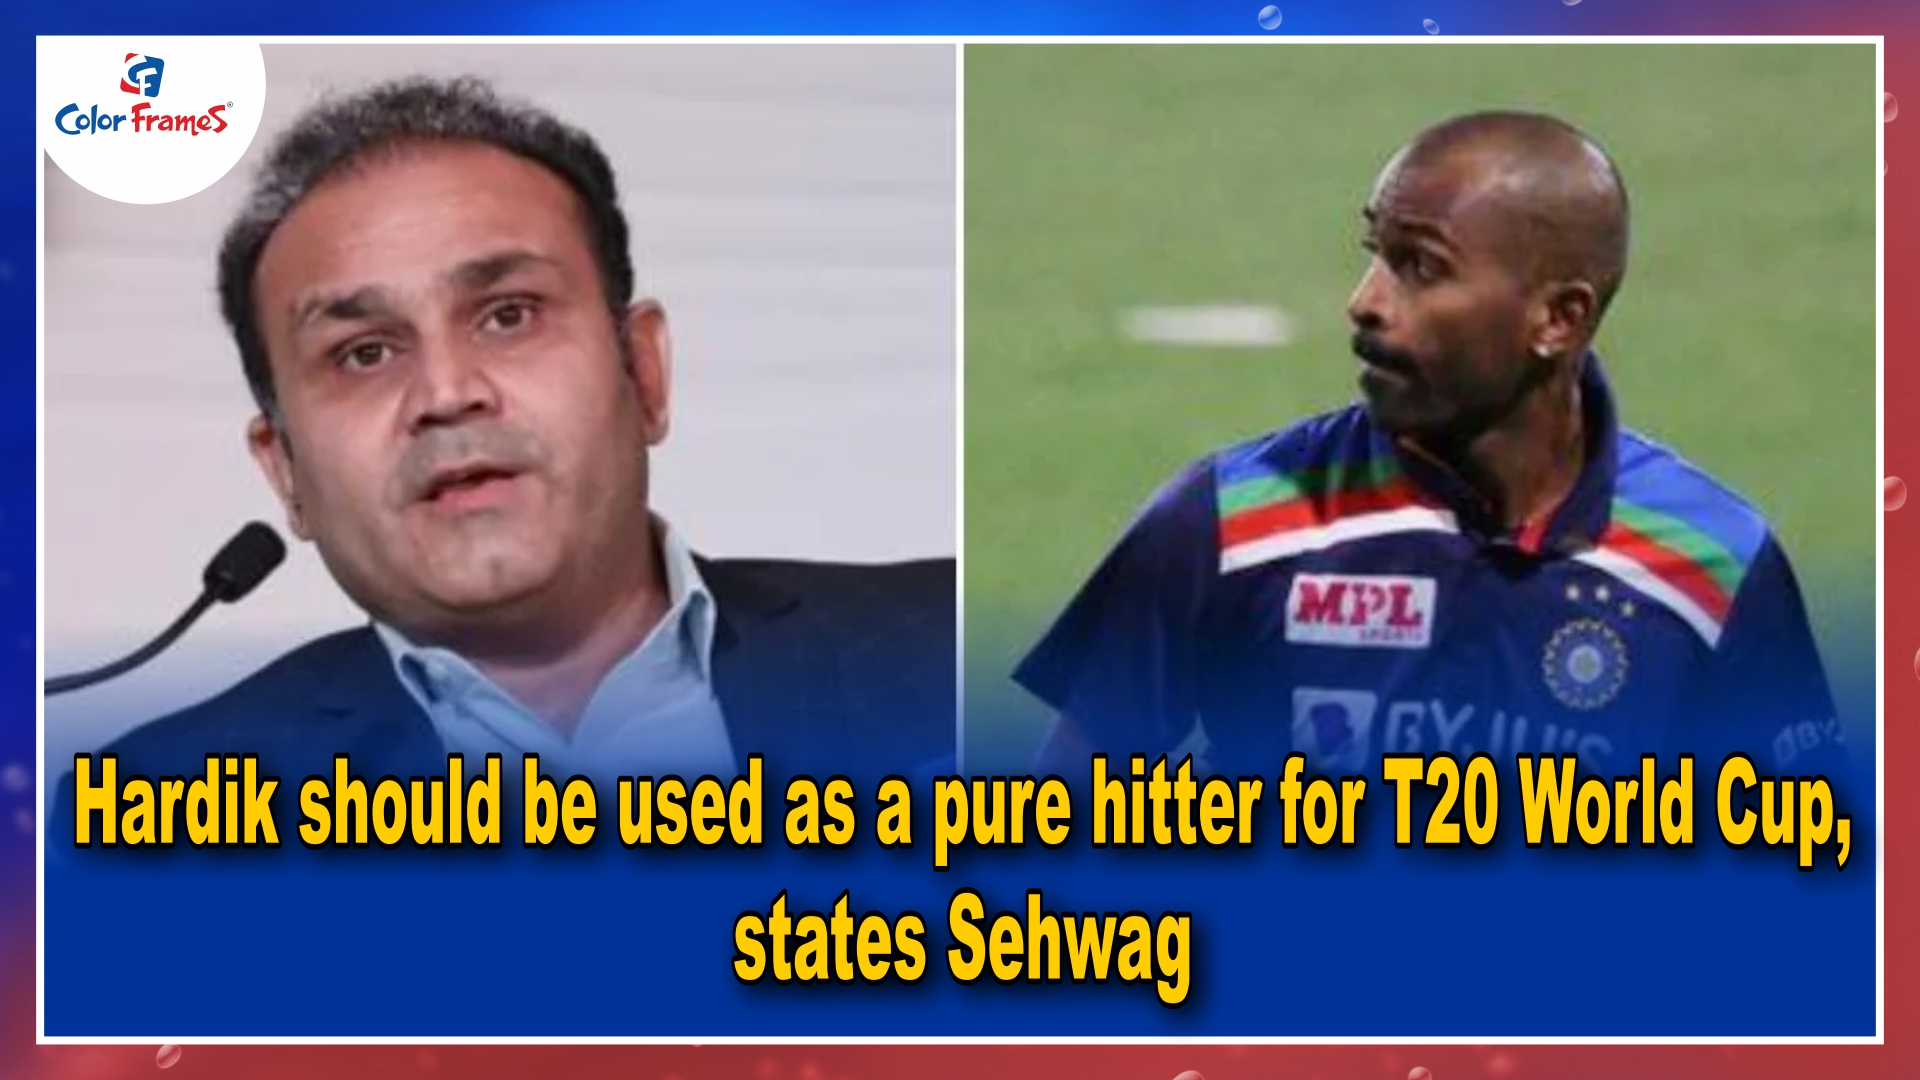 Hardik should be used as a pure hitter for T20 World Cup, states Sehwag